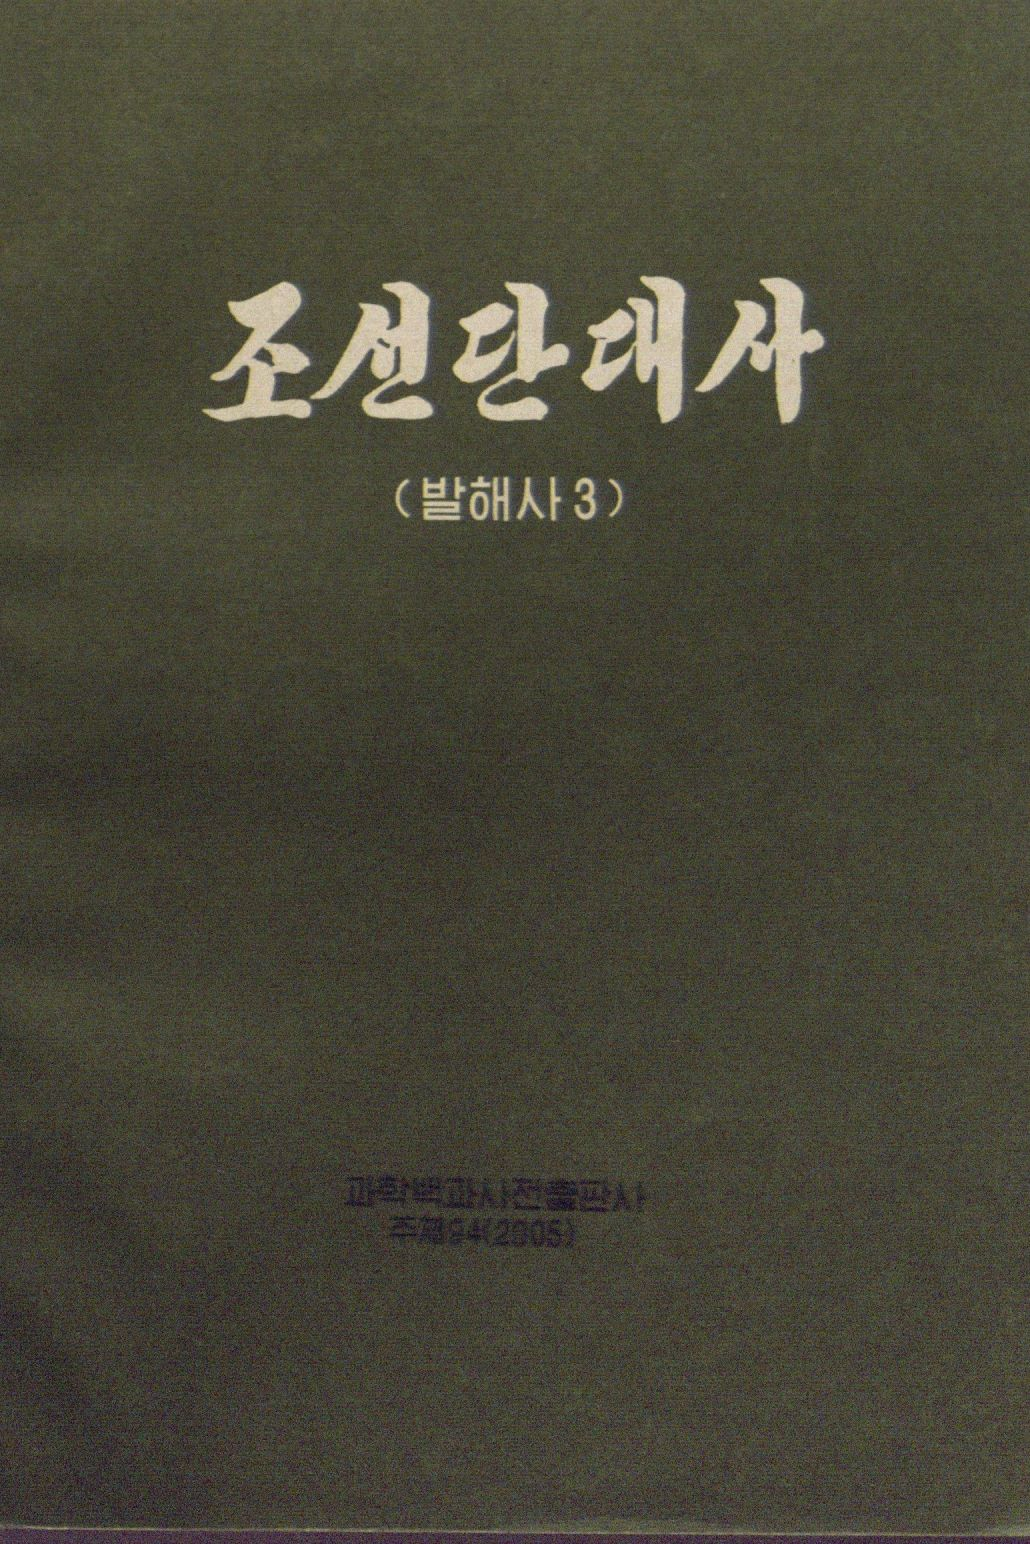 title page of 조선단대사: 발해사 3